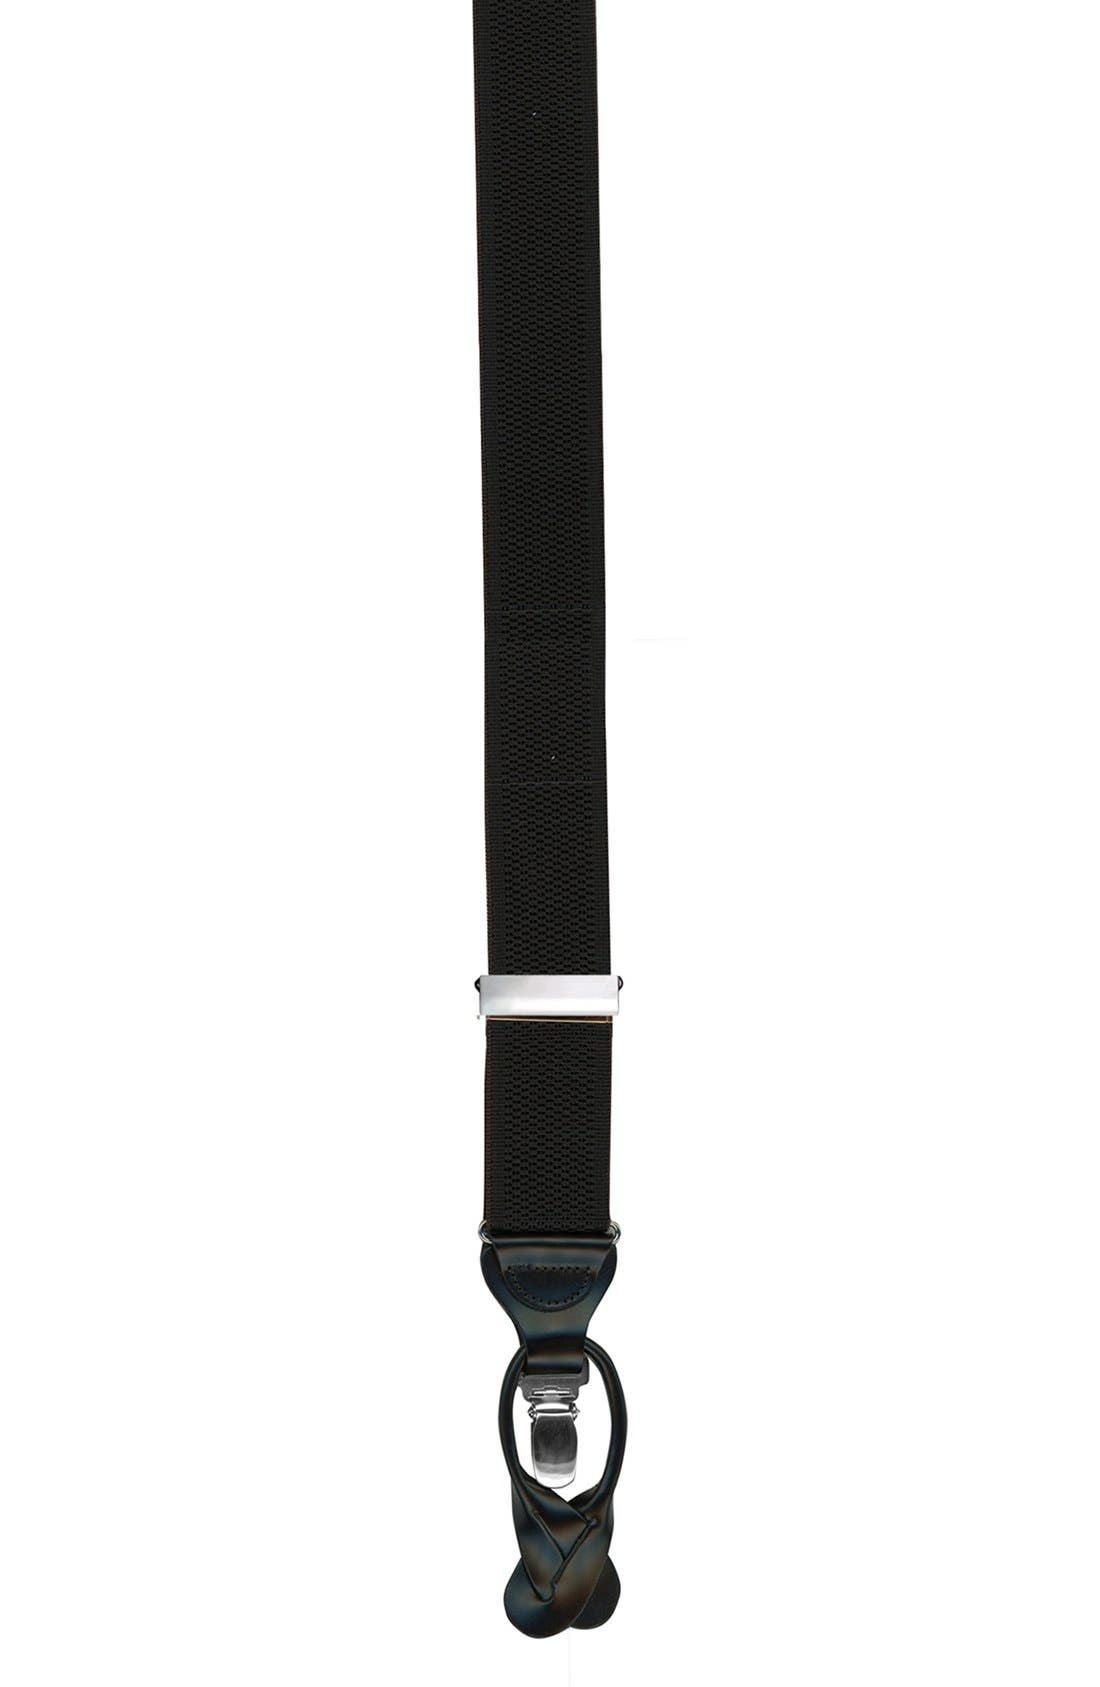 Trafalgar Convertible Stretch Nylon Suspenders